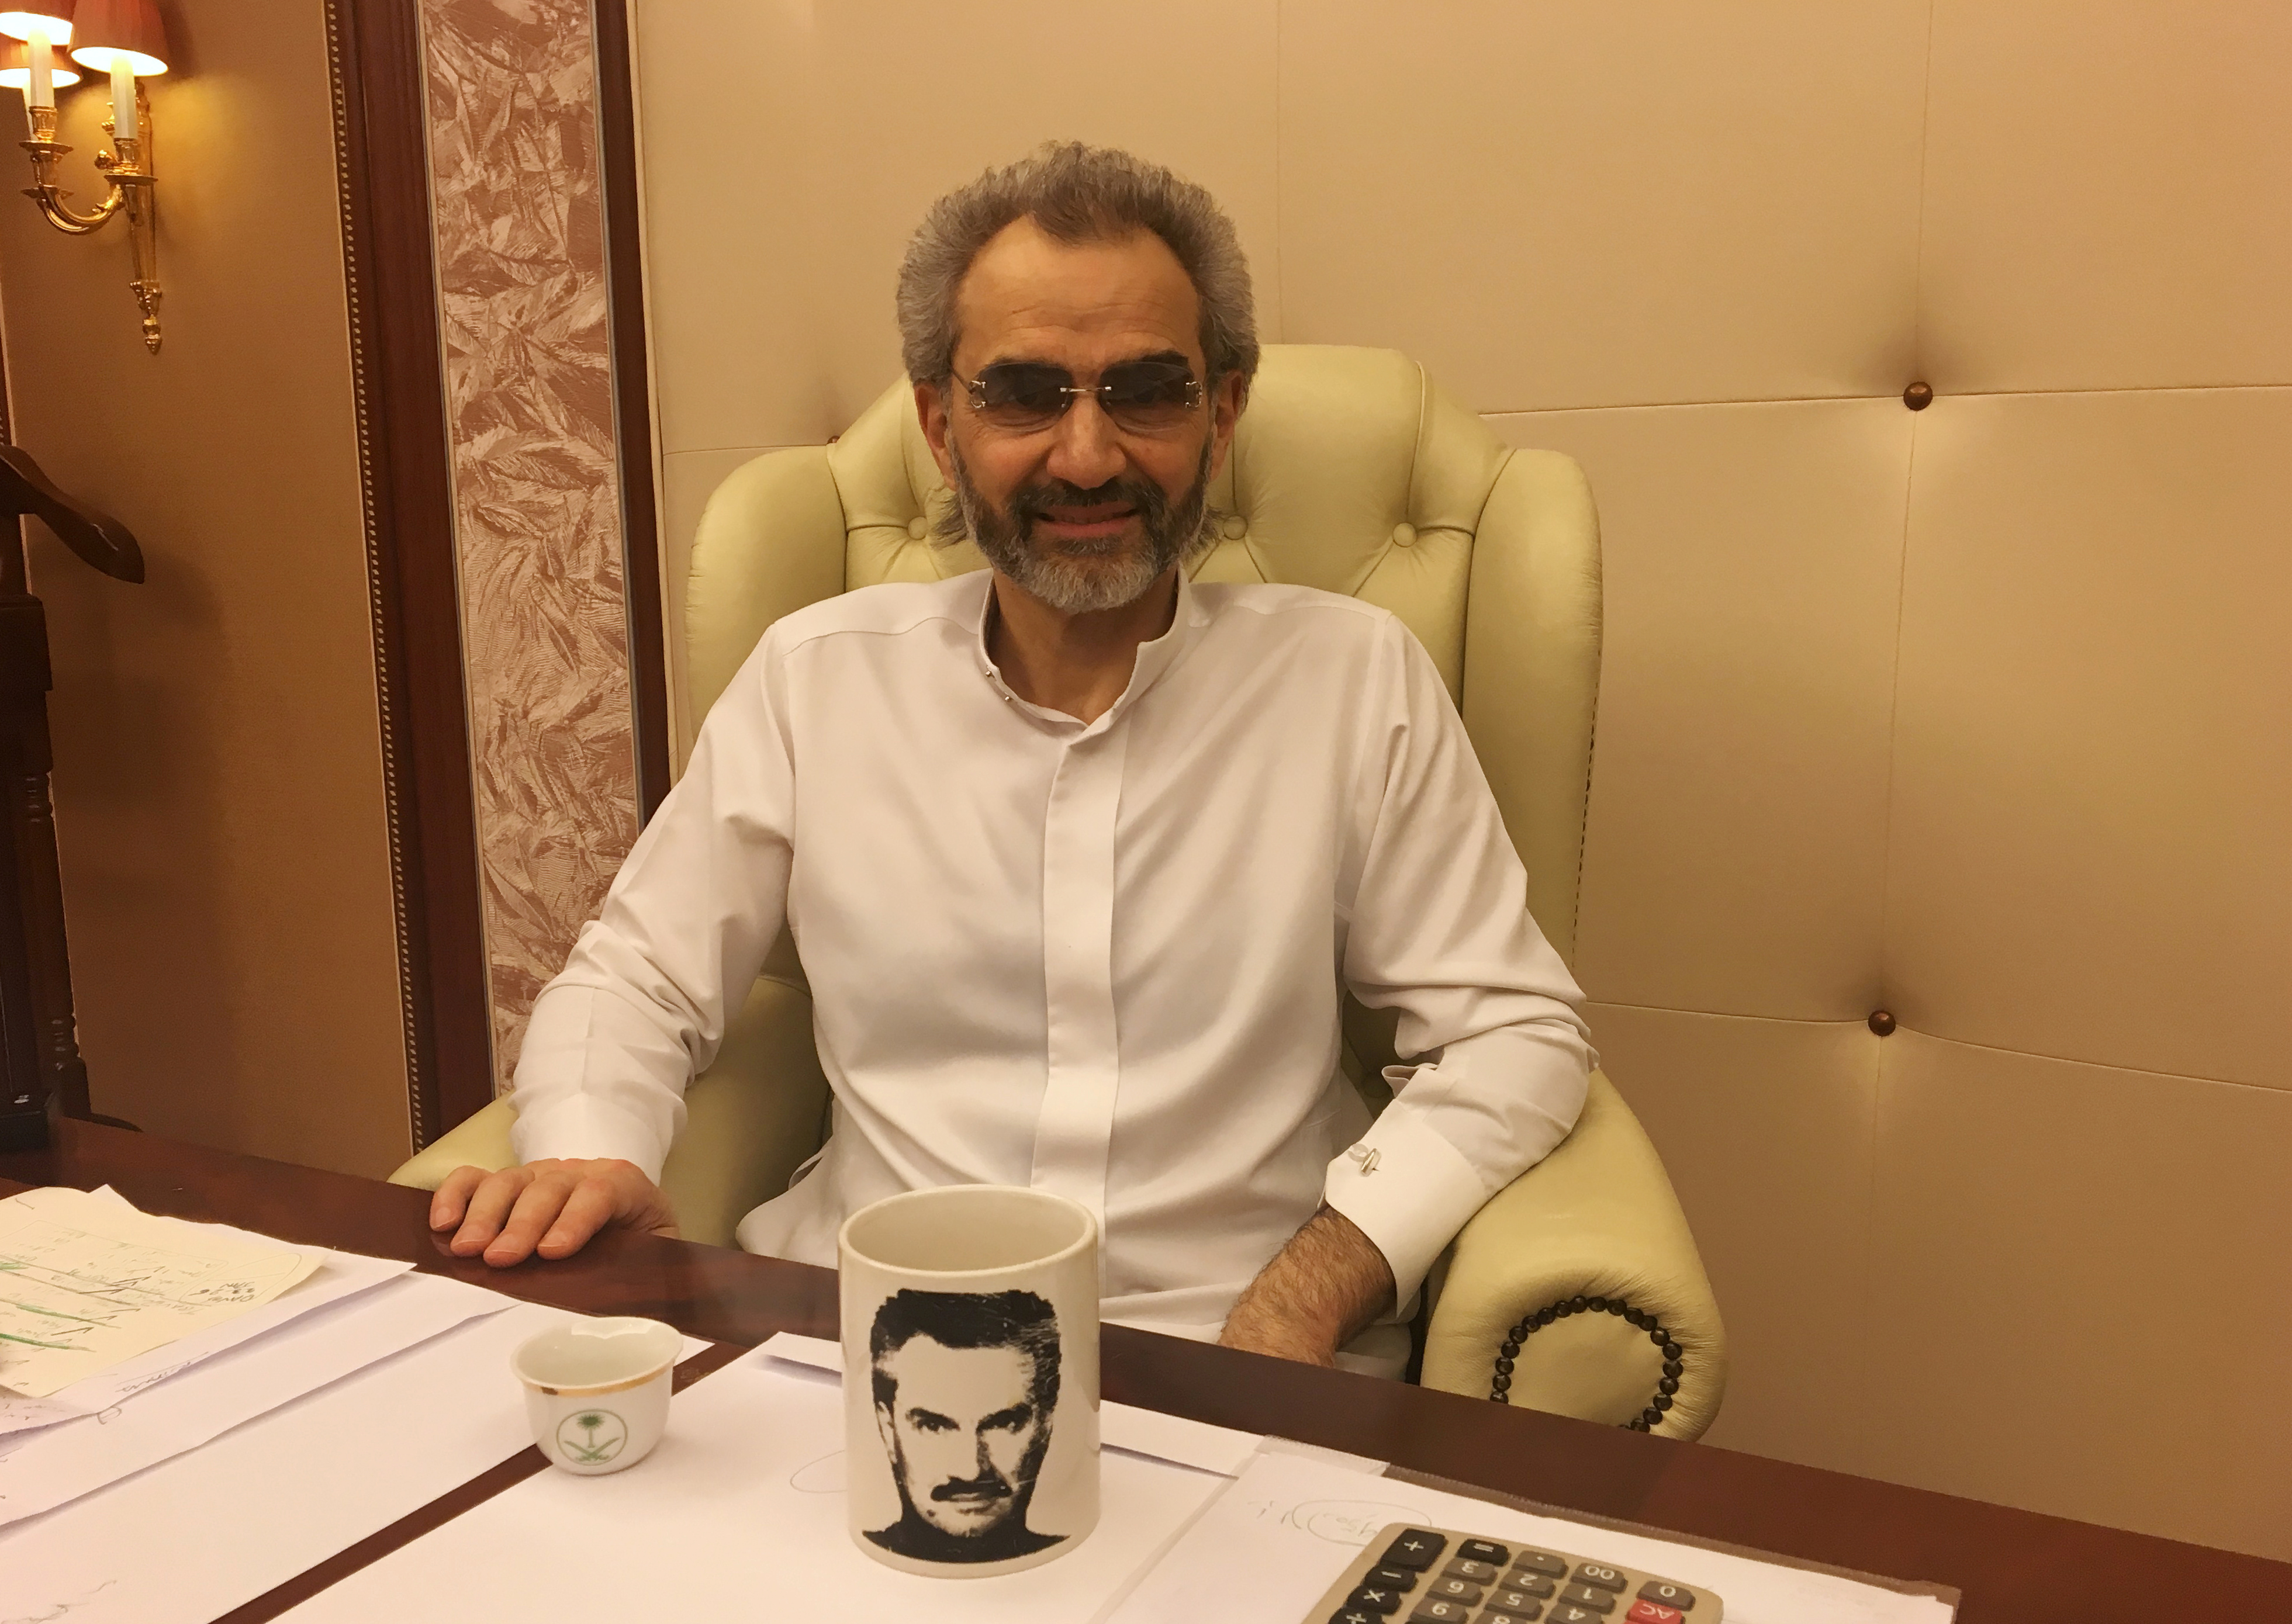 Saudi Arabian billionaire Prince Alwaleed bin Talal sits for an interview with Reuters in the office of the suite where he has been detained at the Ritz-Carlton in Riyadh, Saudi Arabia January 27, 2018, REUTERS/Katie Paul - RC1DEE4DE860